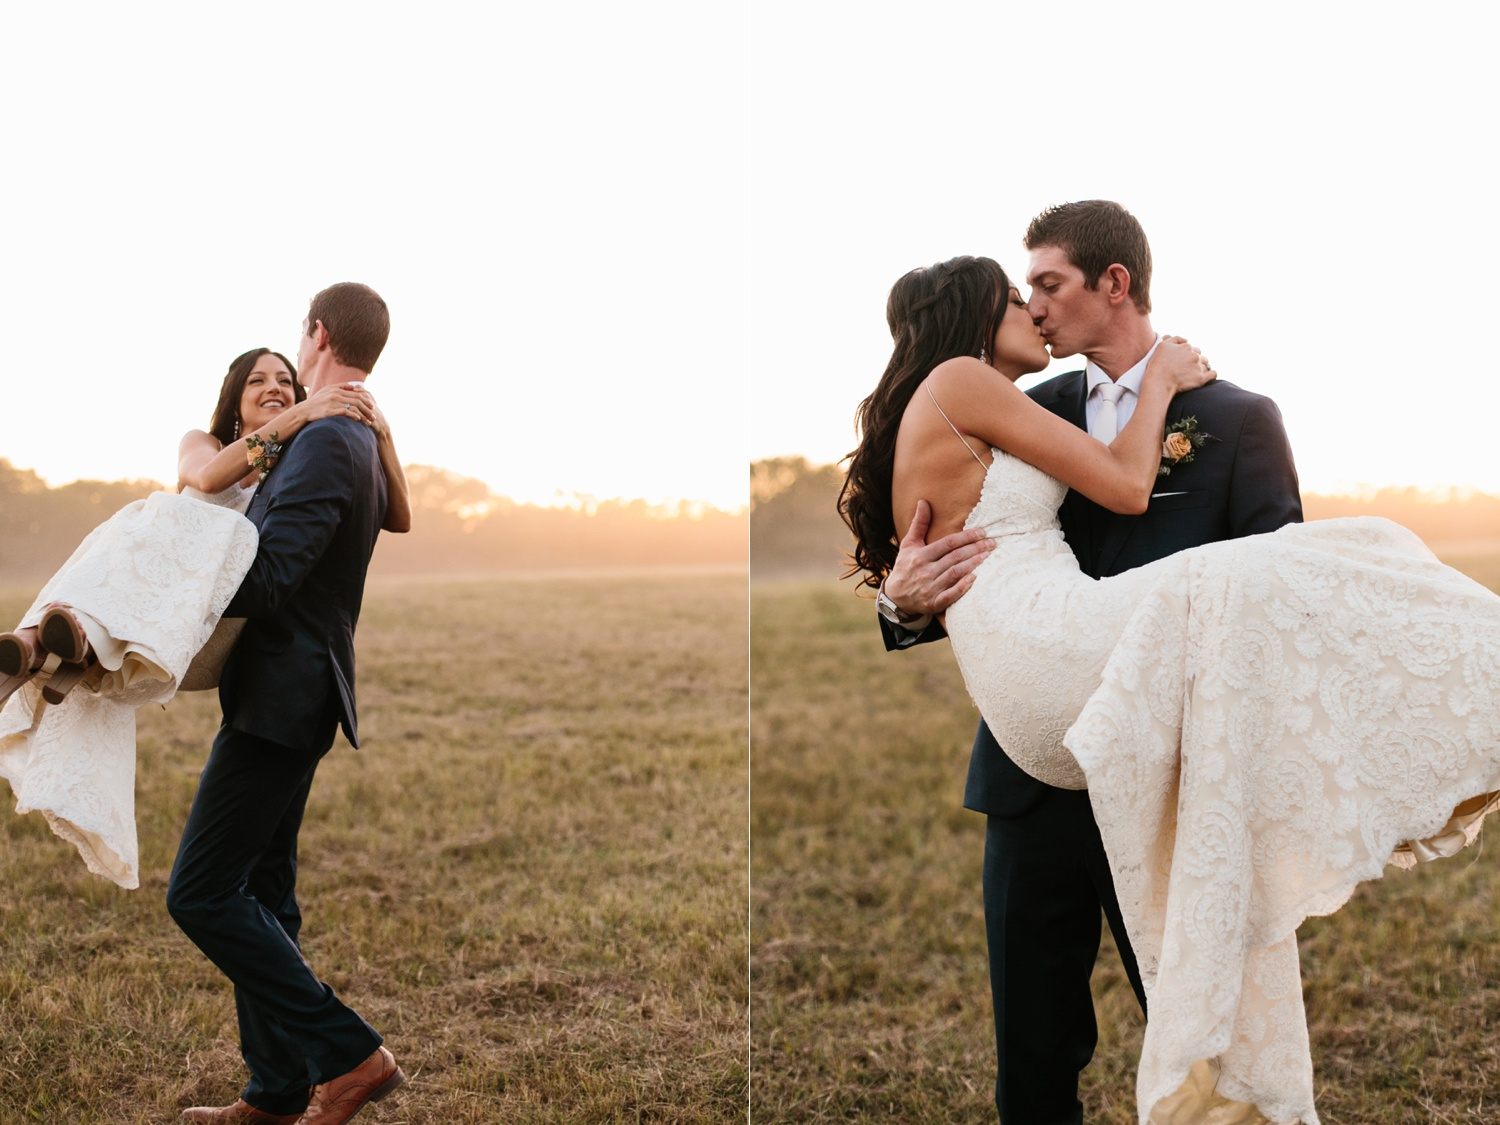 Erica + Henry | a bohemian inspired wedding at Chandlers Gardens in Salina, TX by North Texas Wedding Photographer Rachel Meagan Photography 112